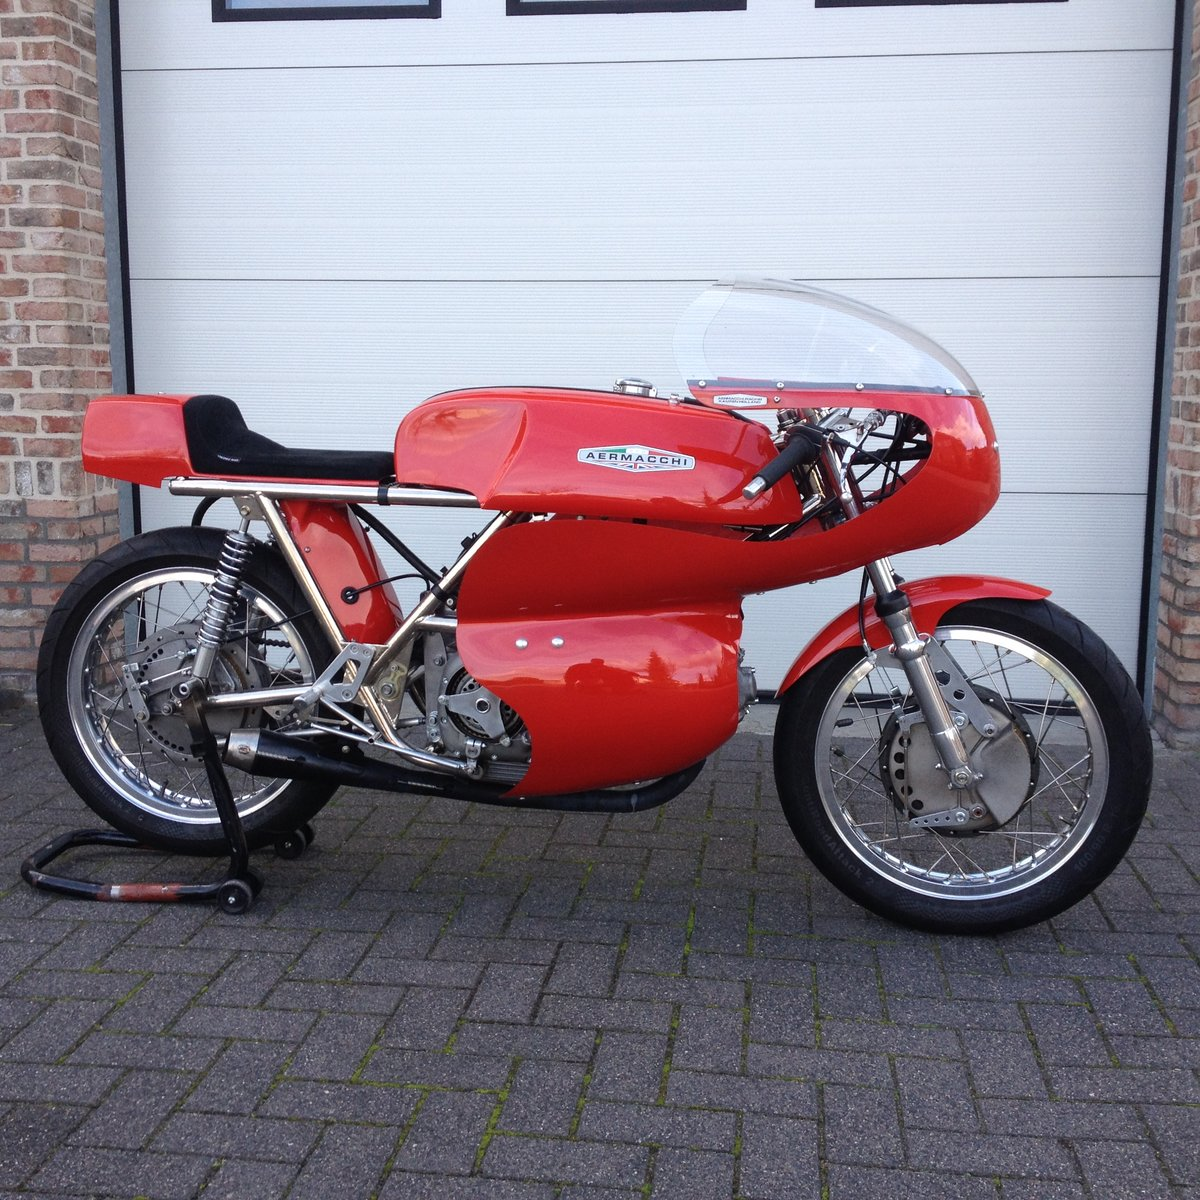 1970 Aermacchi race 380 For Sale (picture 1 of 6)